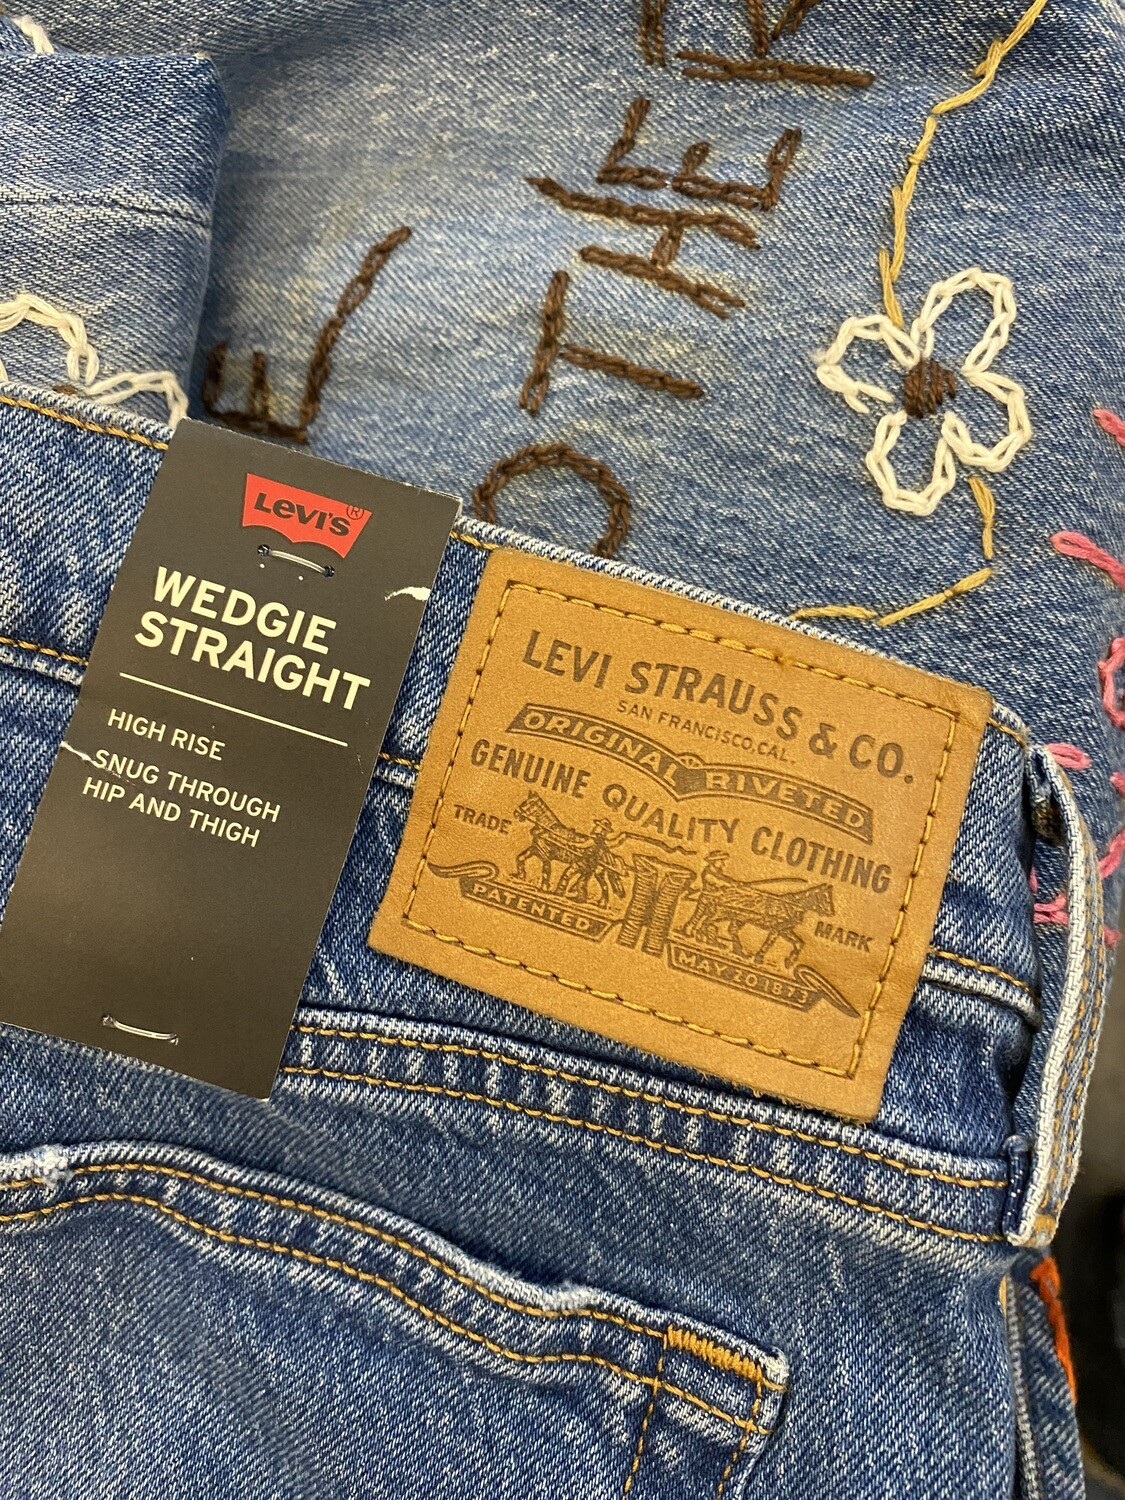 ESIAAM Levi's 501 Hand-Embroidered Jeans 31 Wedgie Straight